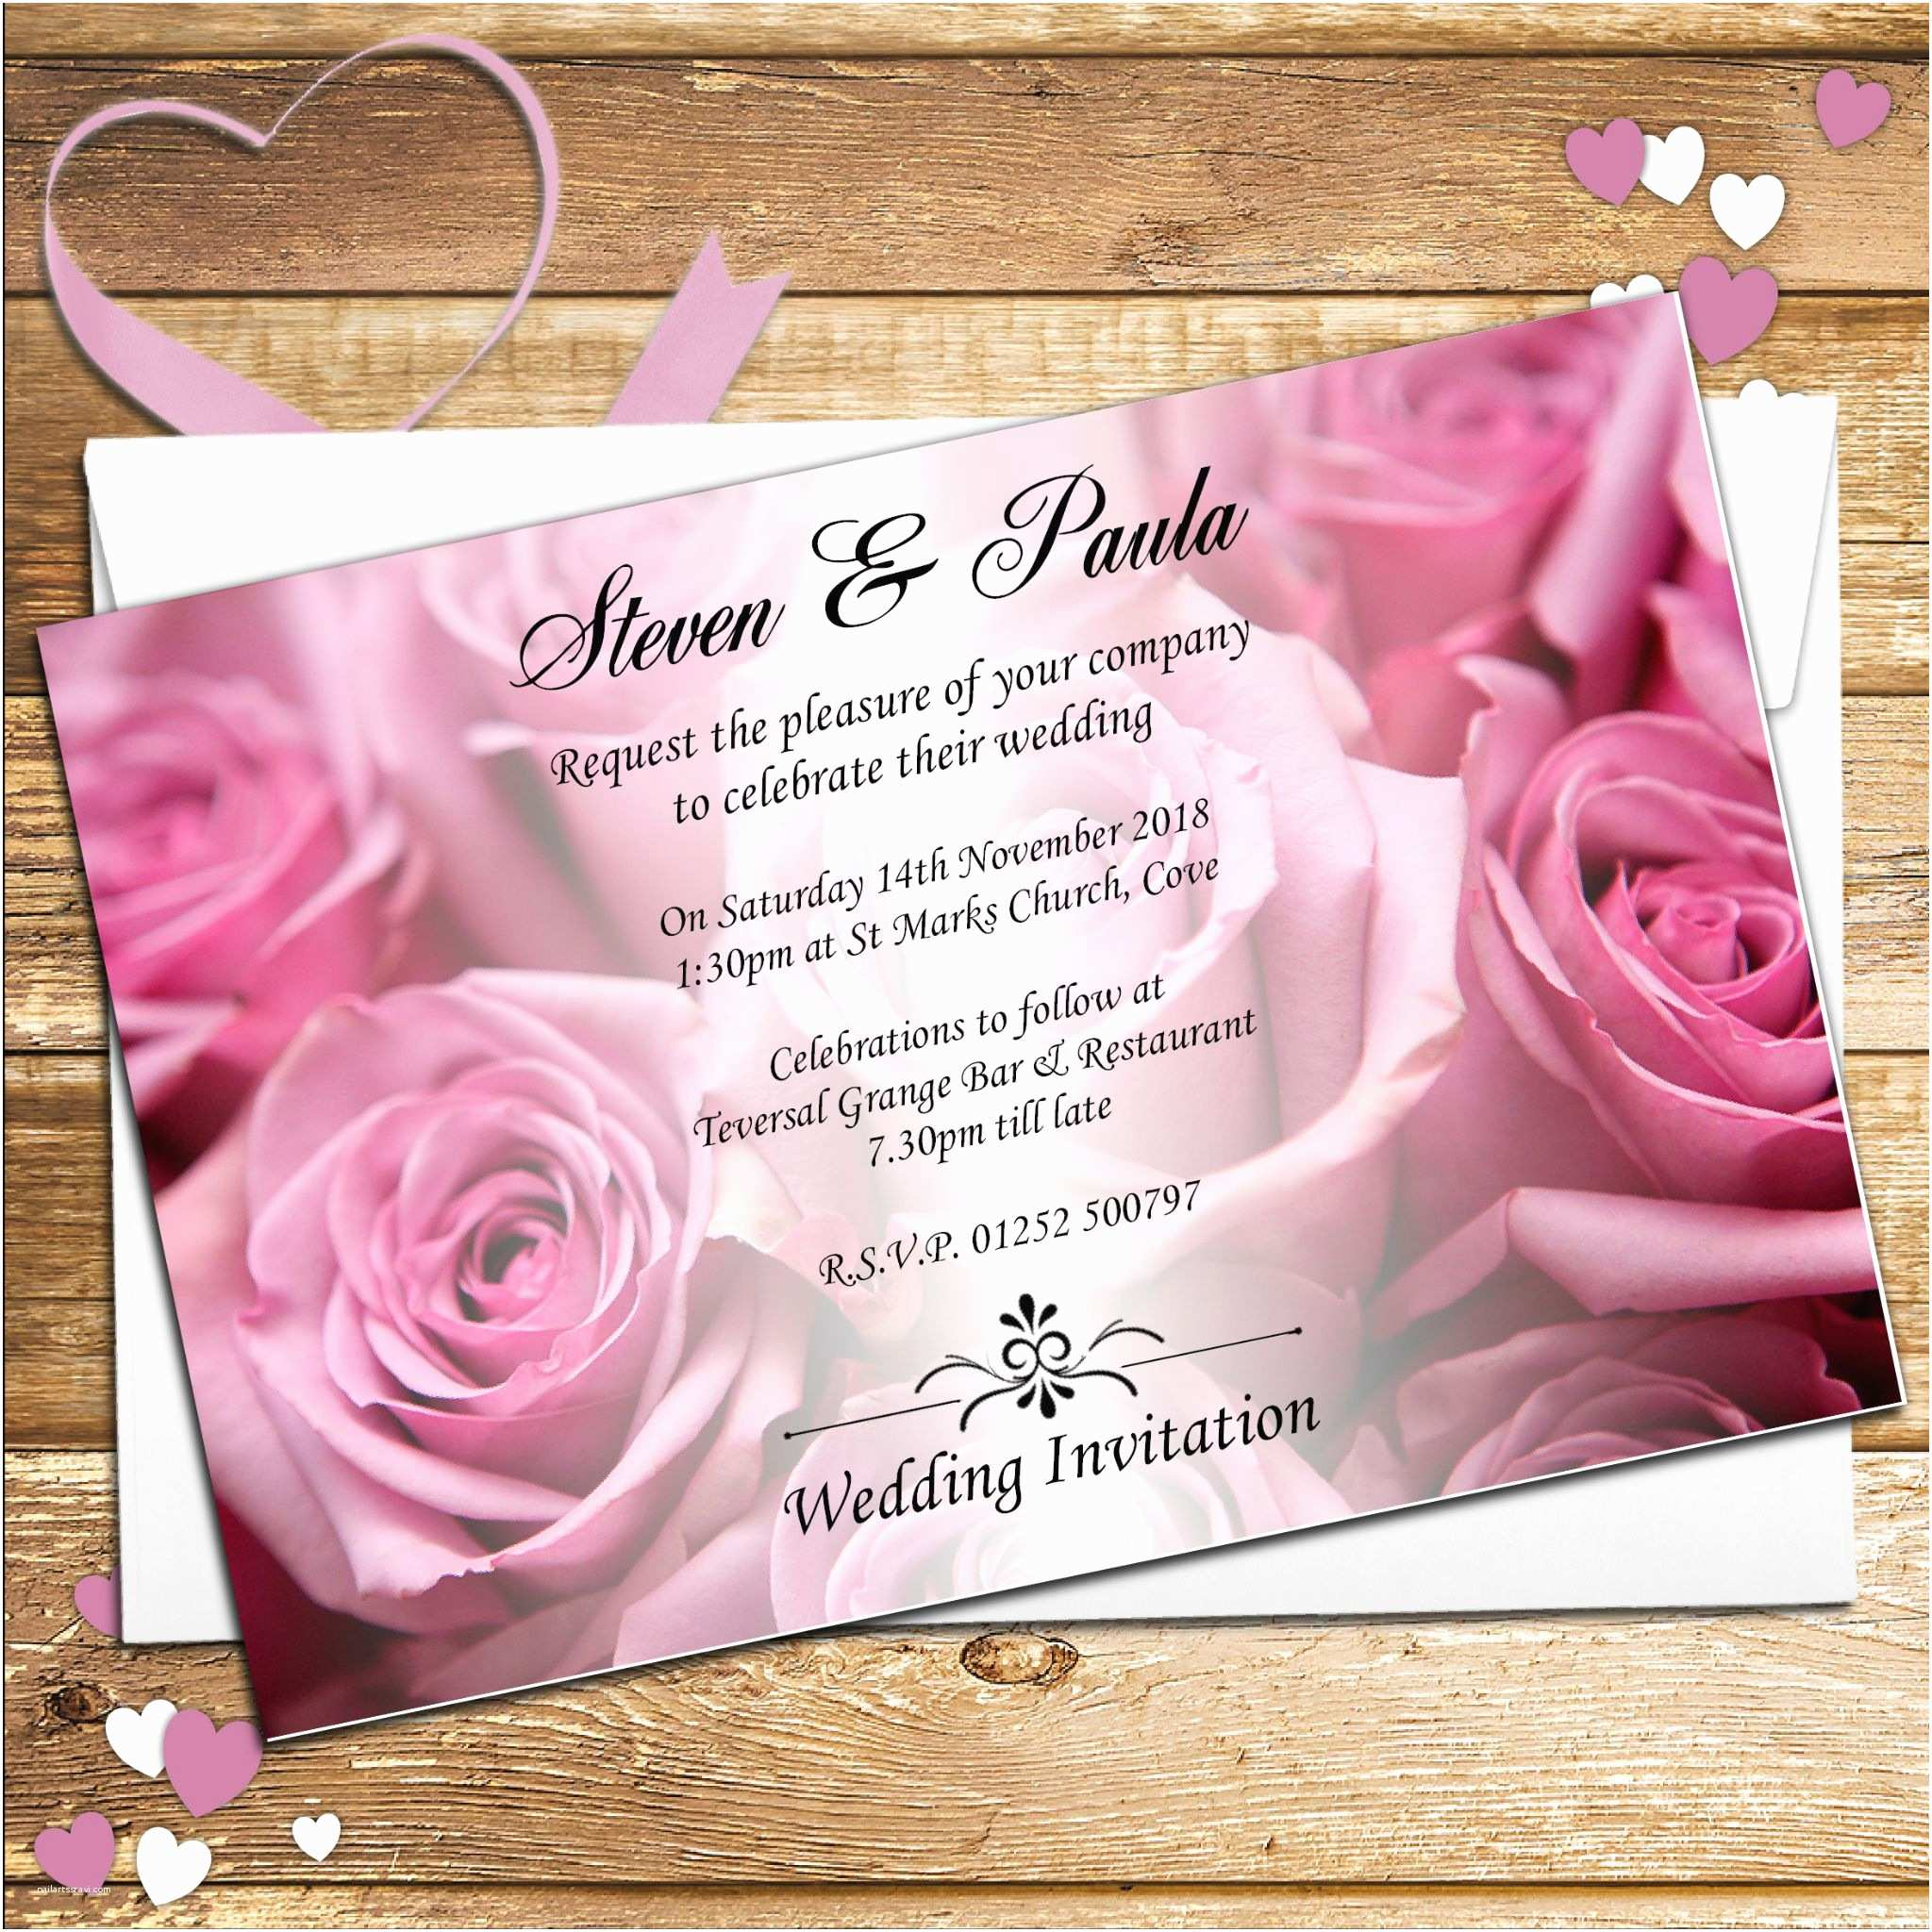 Rose Wedding Invitations 10 Personalised Pink Roses Wedding Invitations Day evening N52